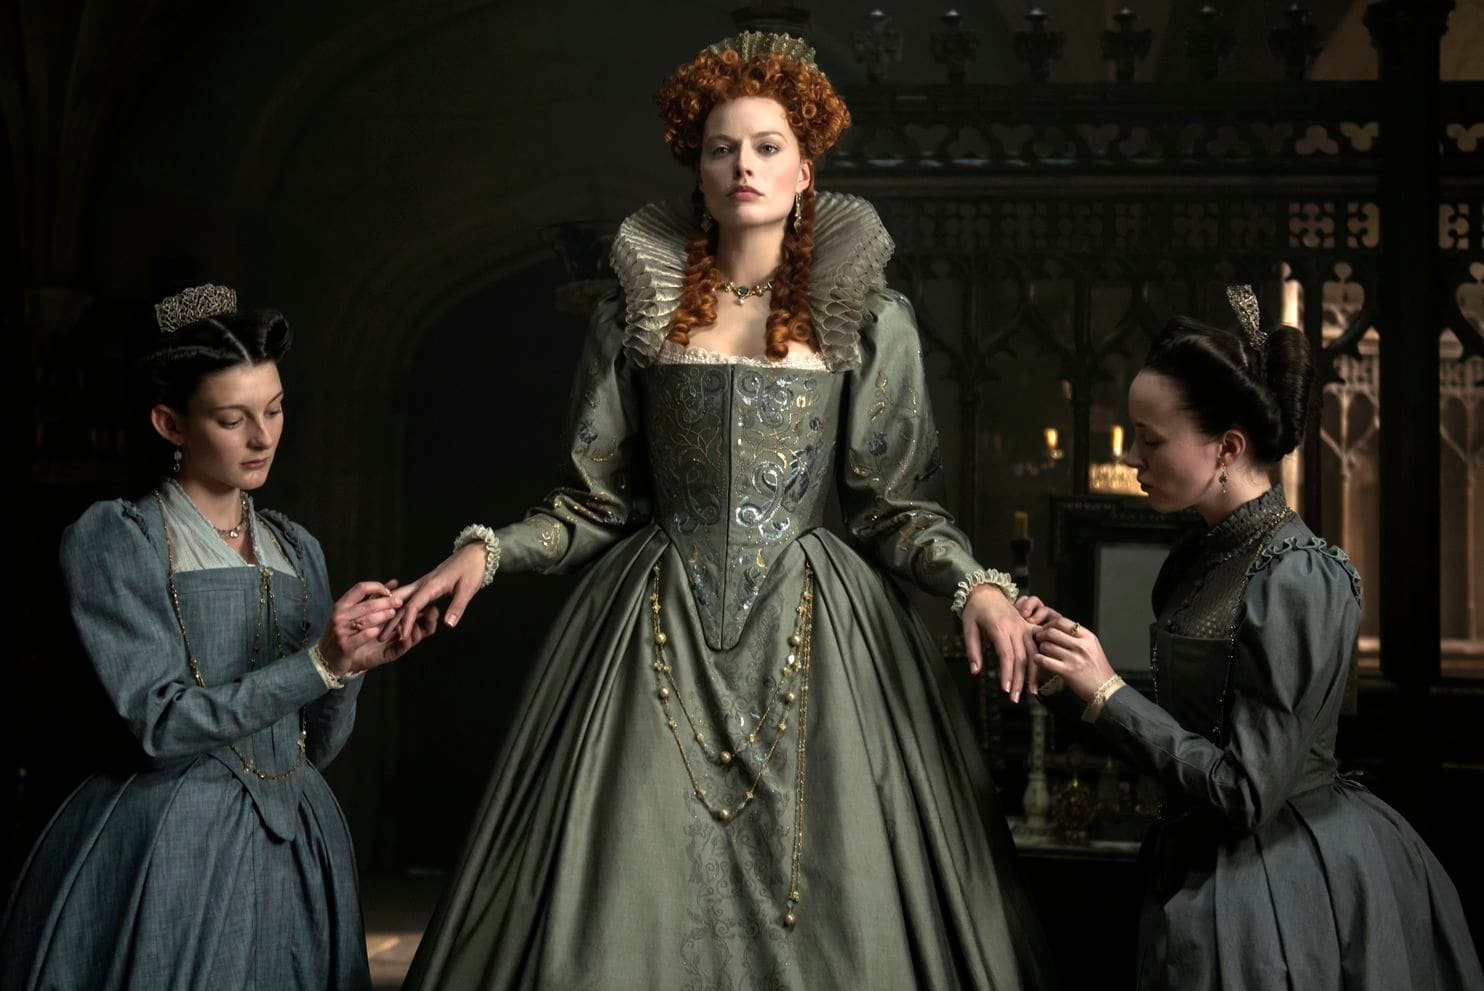 Grace Molony as Dorothy Stafford, Margot Robbie as Queen Elizabeth I and Georgia Burnell as Kate Carey in a scene from Mary Queen of Scots.